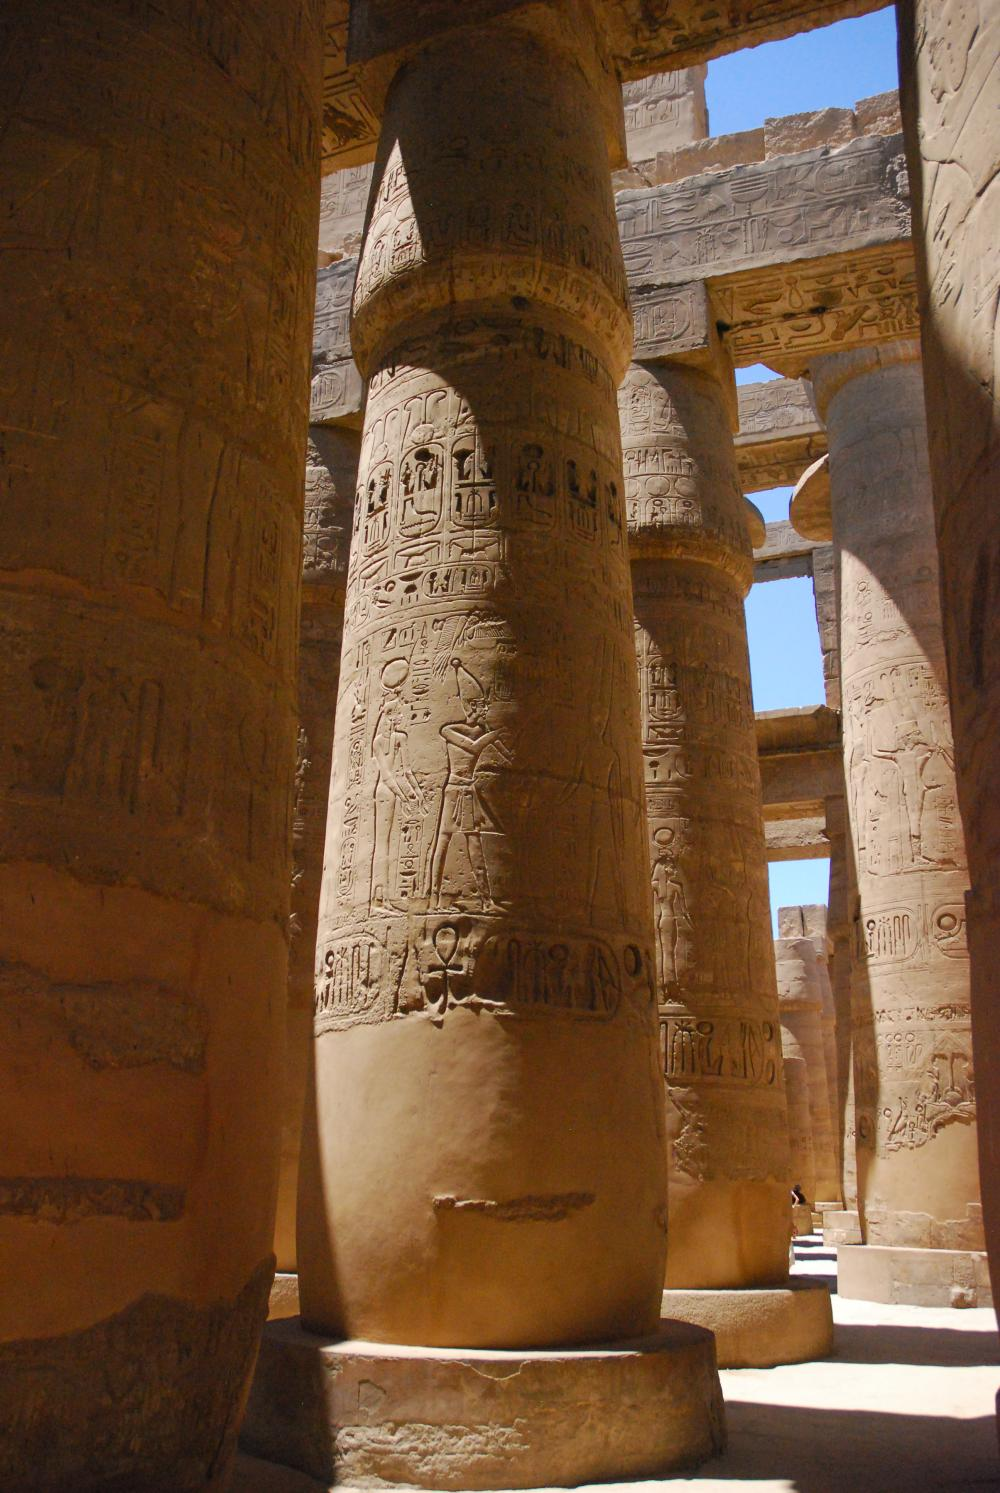 View of the larger columns with architraves still in situ and the remains of a clerestory window in the background (left) and smaller columns (right).